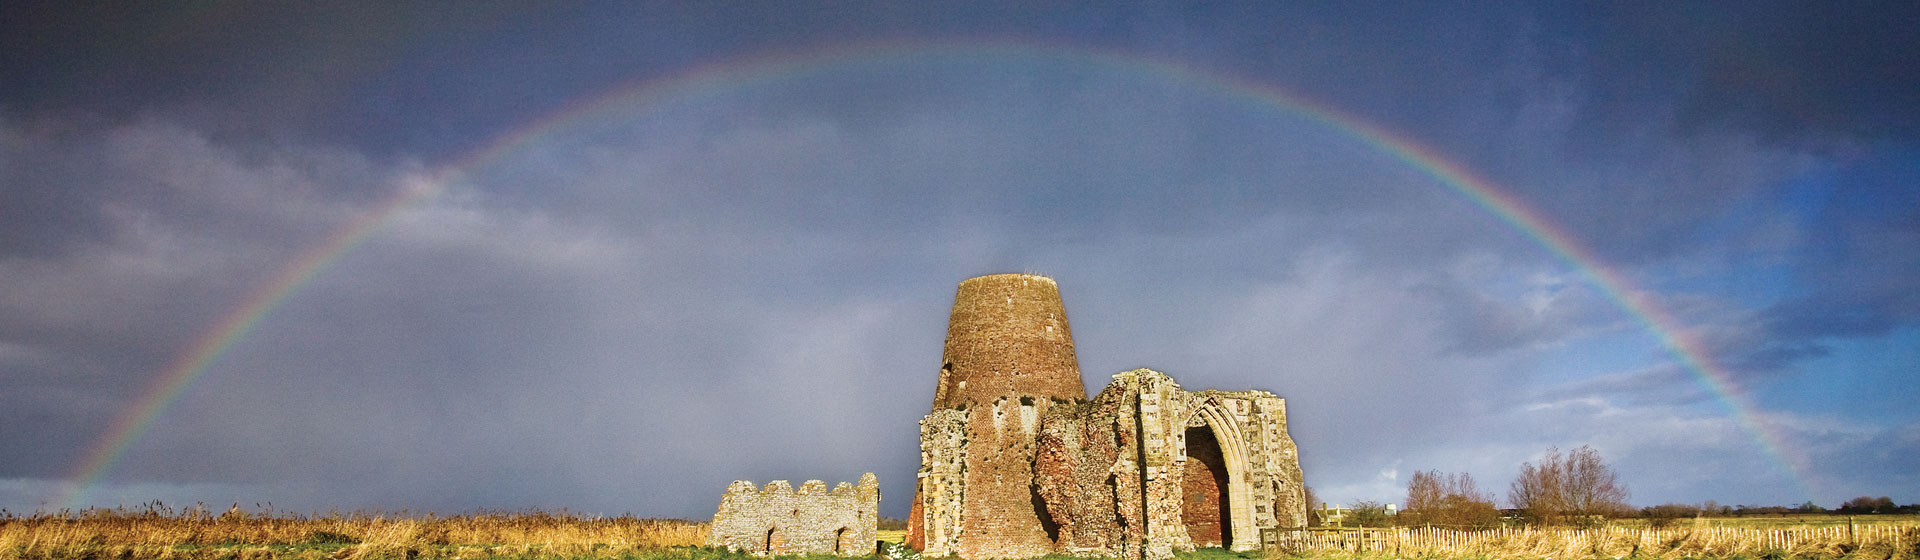 St Benet's Abbey on the River Bure